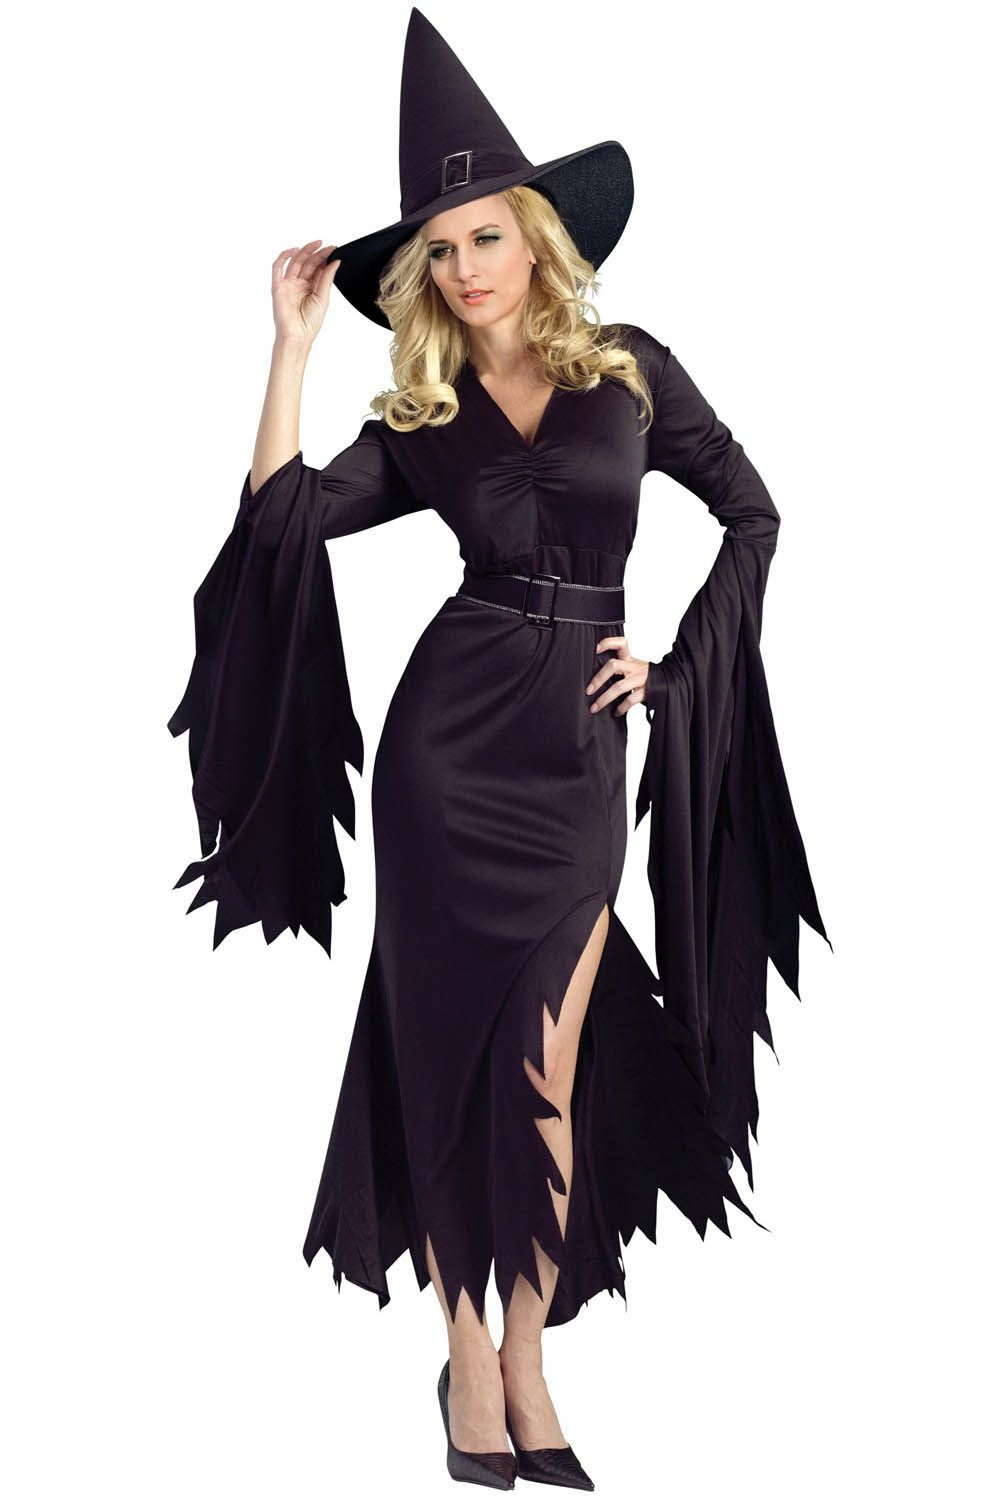 Ladies Sorceress Fancy Dress Costume Gothic Witch Halloween Outfit Plus Size